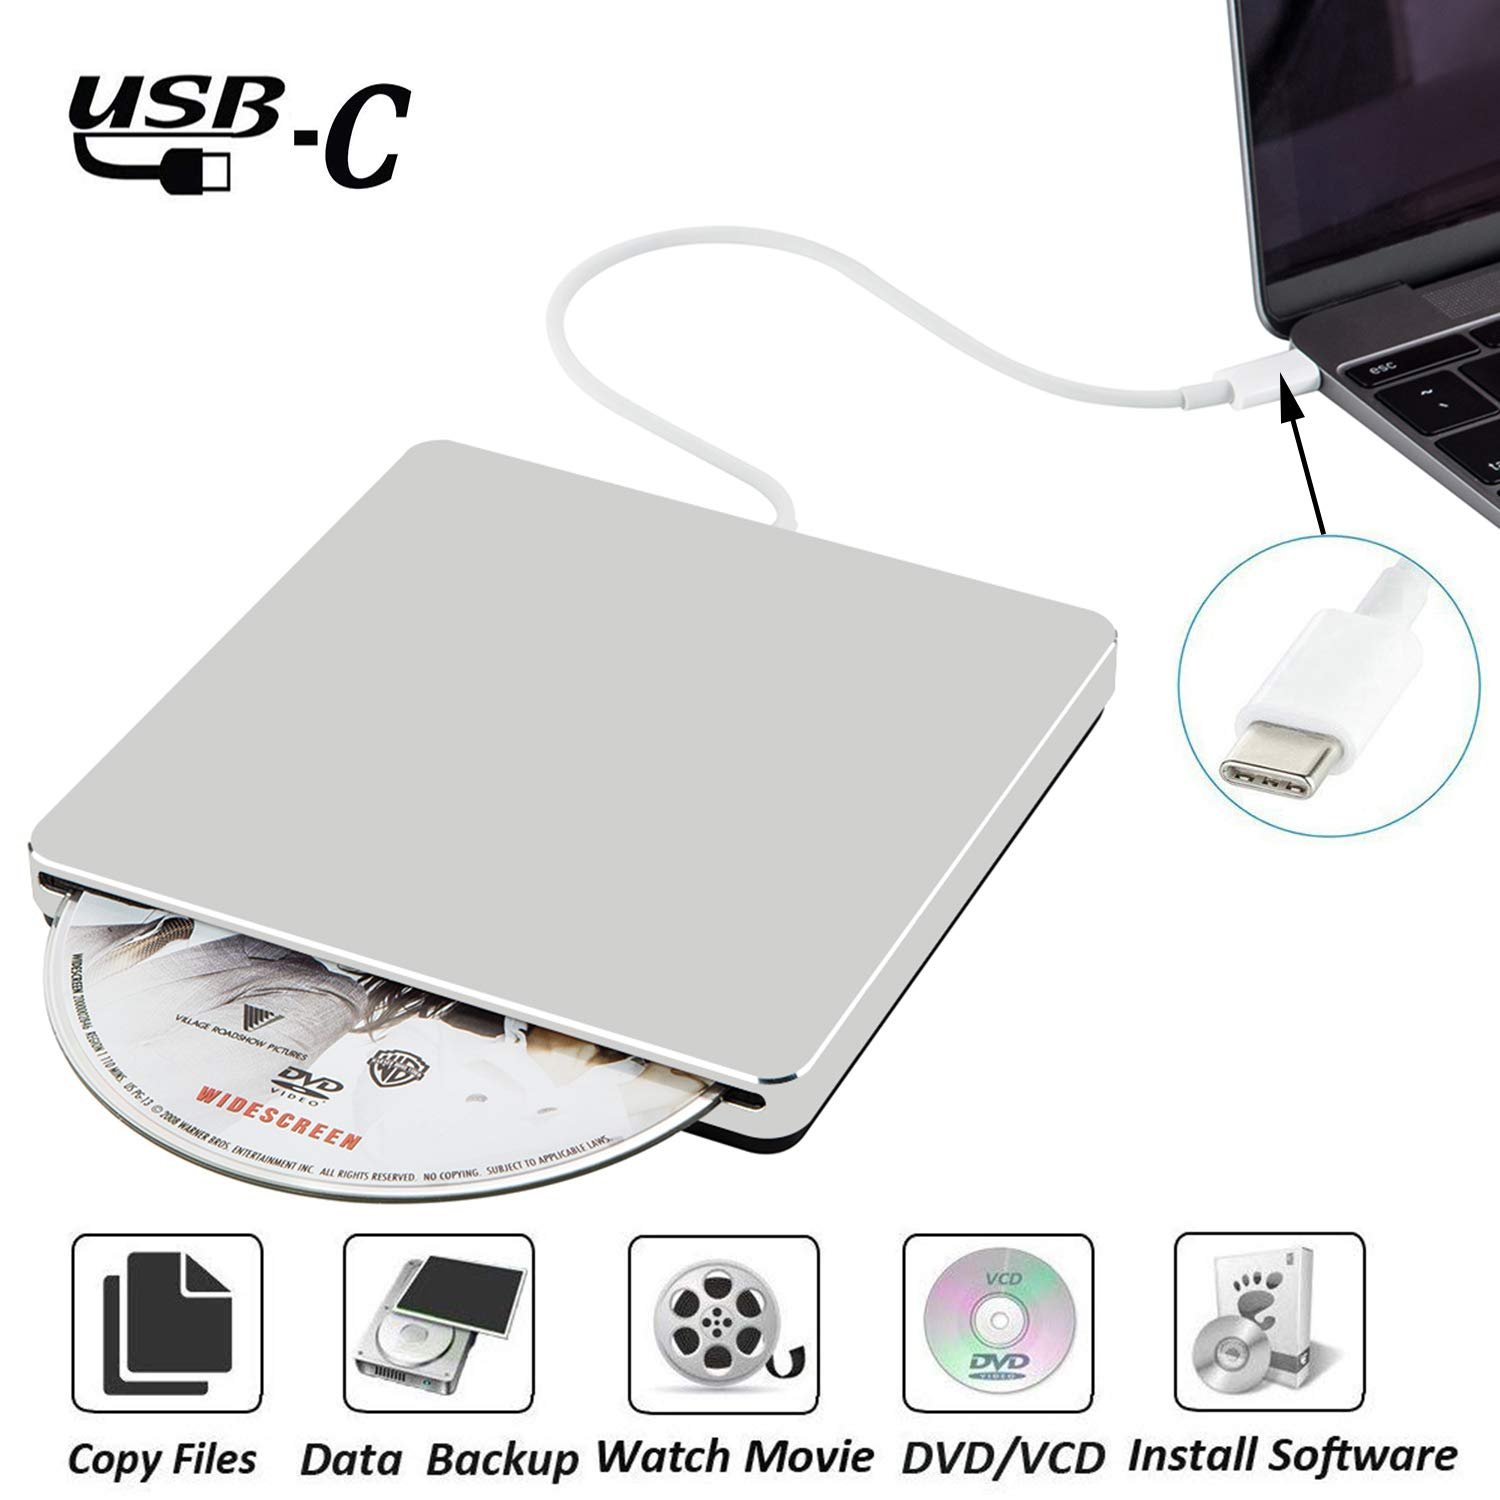 Nolyth External Dvd Cd Drive Usb C Superdrive Lenovo Thinkpad Rw Eksternal Atau Slim Optical Rom Player Burner Writer Compatible Mac Book Pro Air Laptop Windows10silver